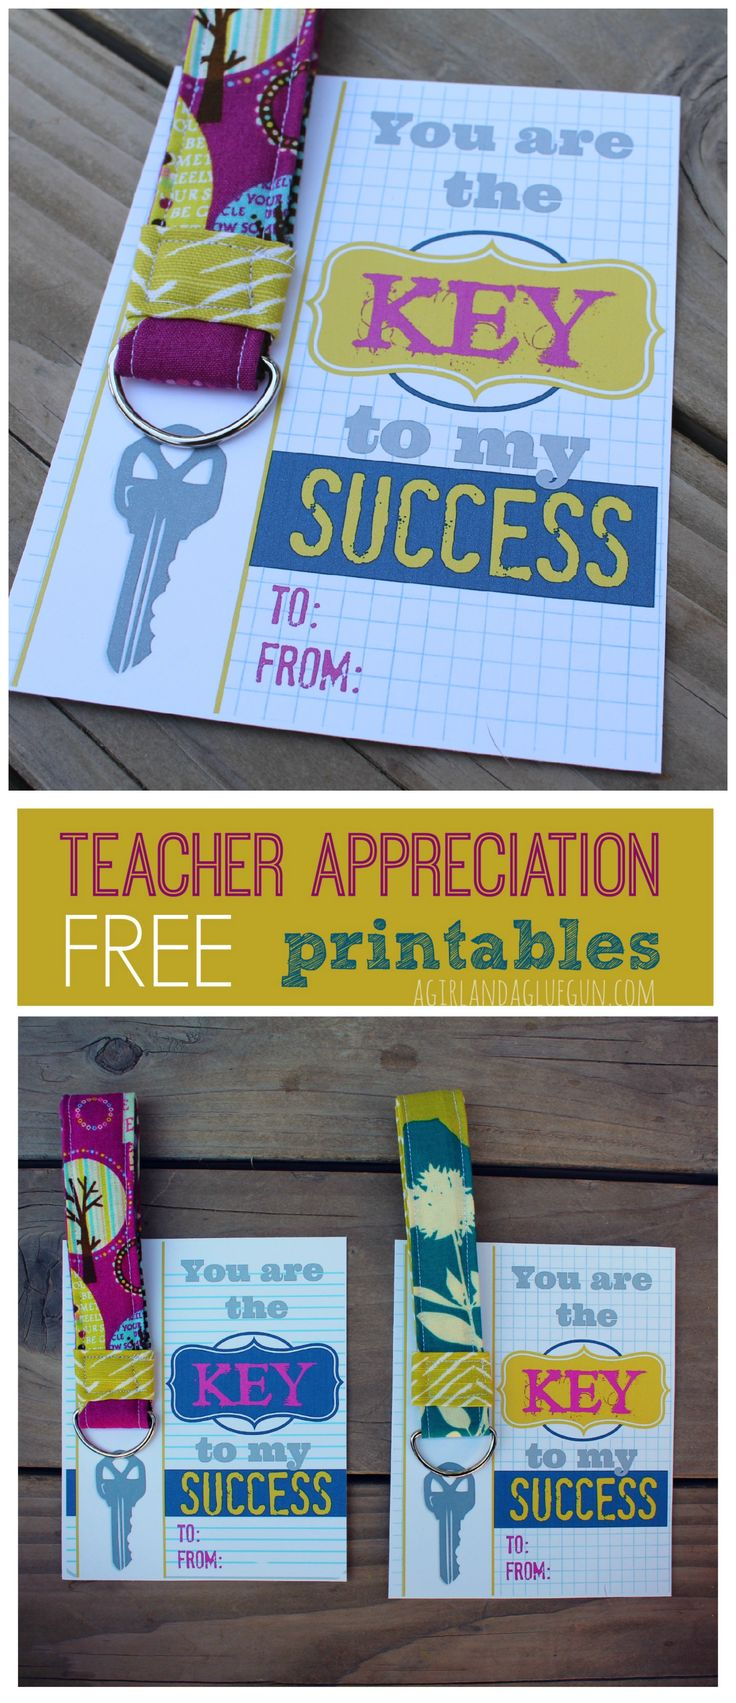 Key to my success--free teacher printables with keychain - A girl and a glue gun